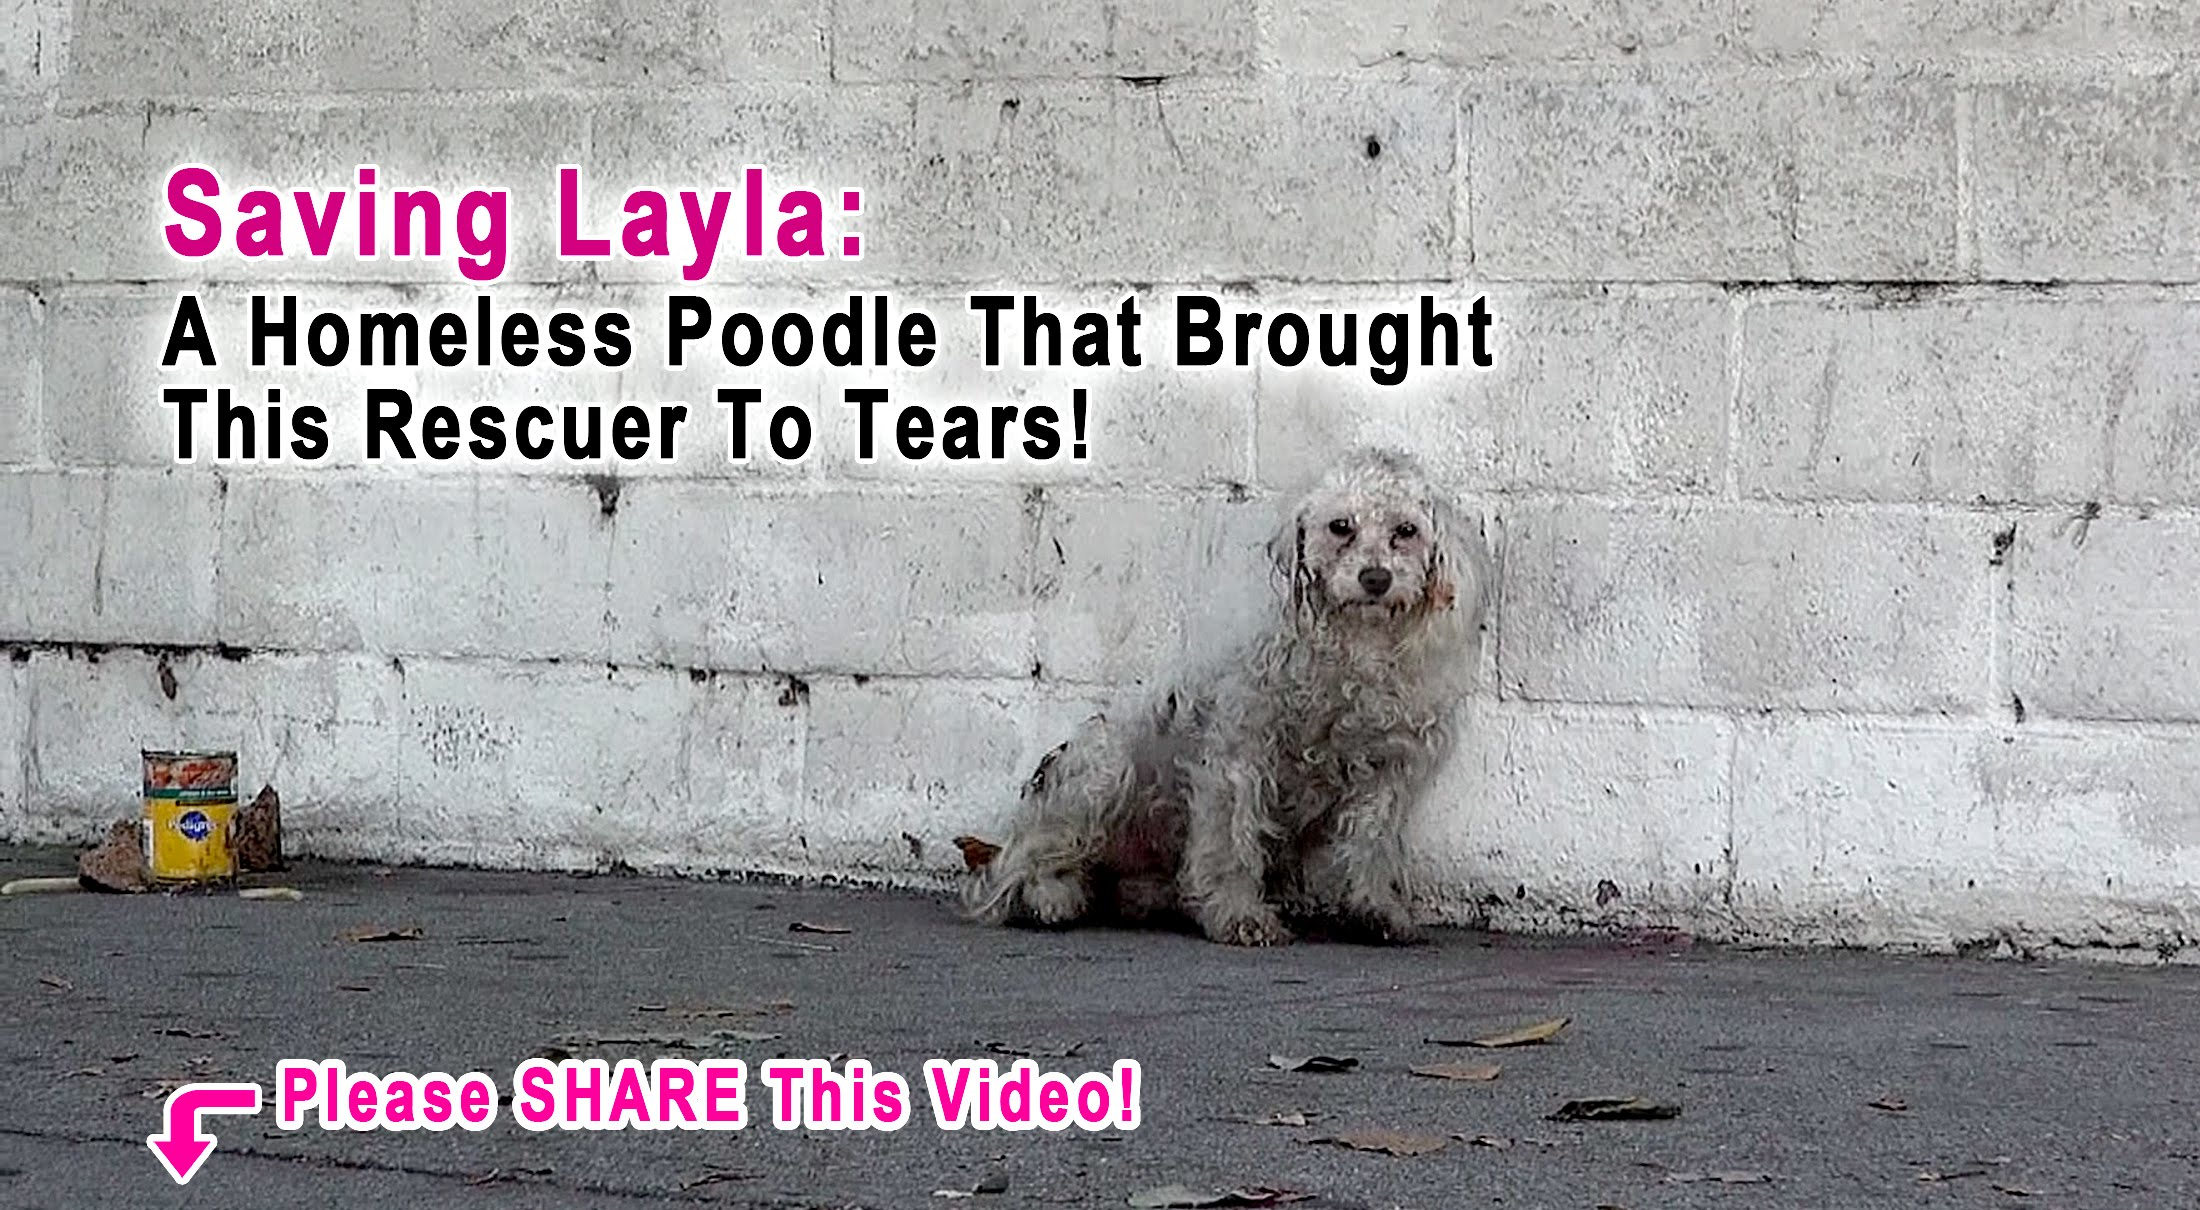 Brought to Tears by a Homeless Poodle